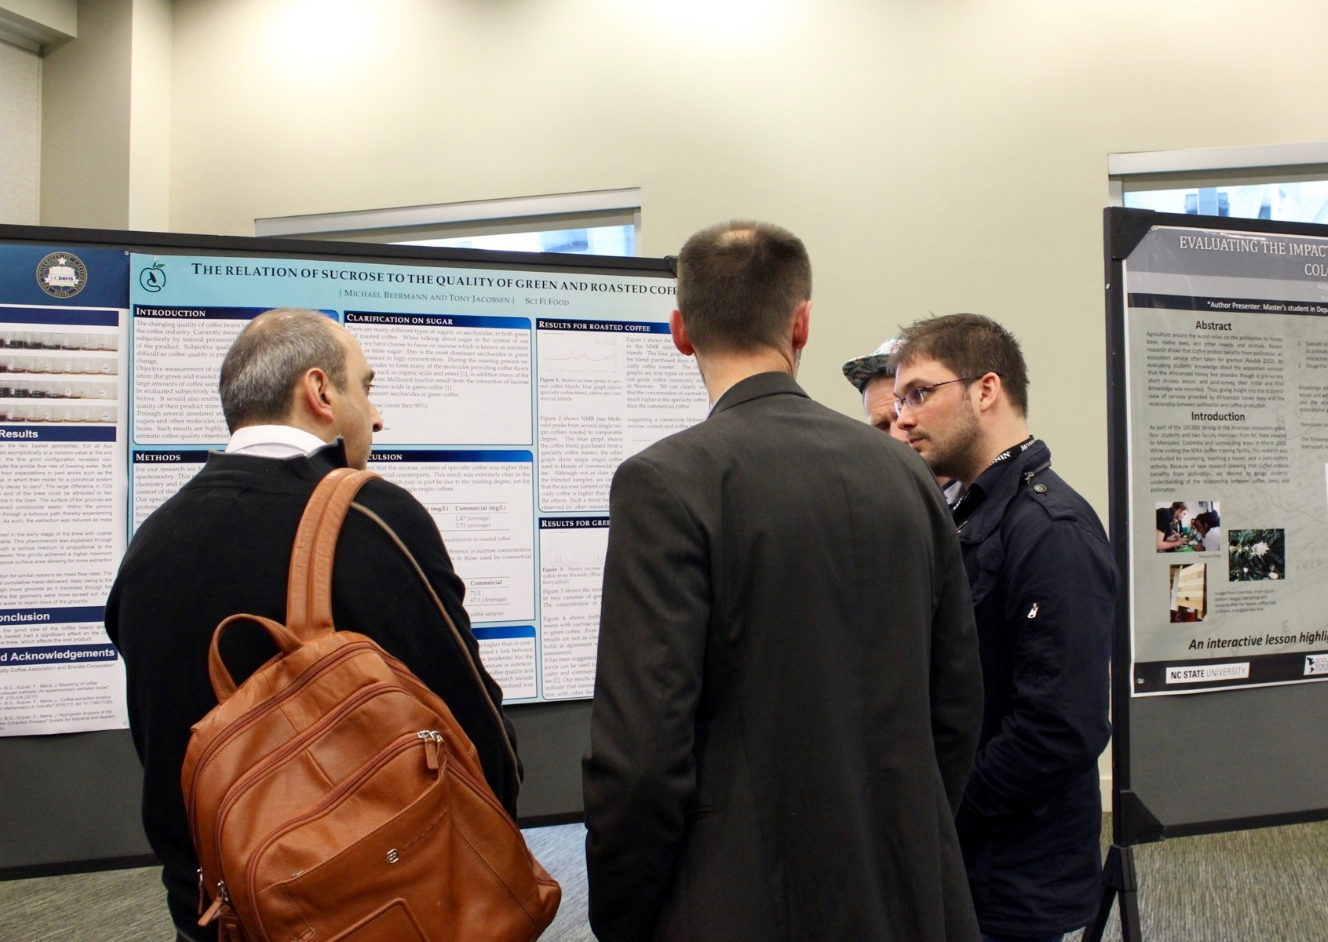 Tony and Michael presenting our research to Ludovic Maillard and Chahan Yeretzian from SCA. Image taken by the Daily Coffee News.